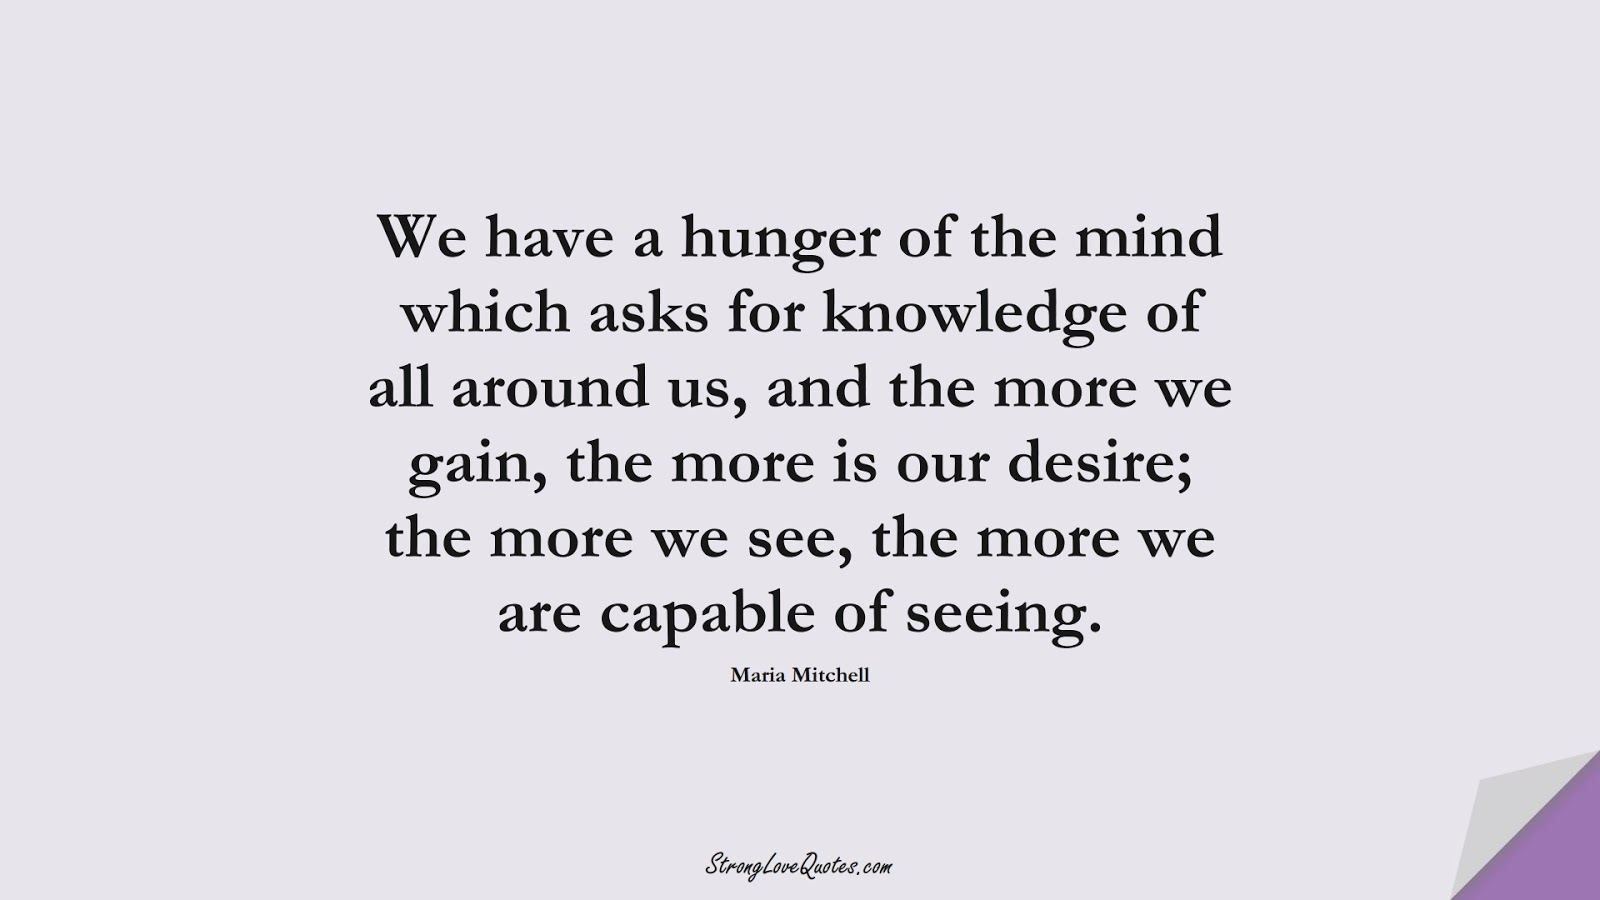 We have a hunger of the mind which asks for knowledge of all around us, and the more we gain, the more is our desire; the more we see, the more we are capable of seeing. (Maria Mitchell);  #KnowledgeQuotes